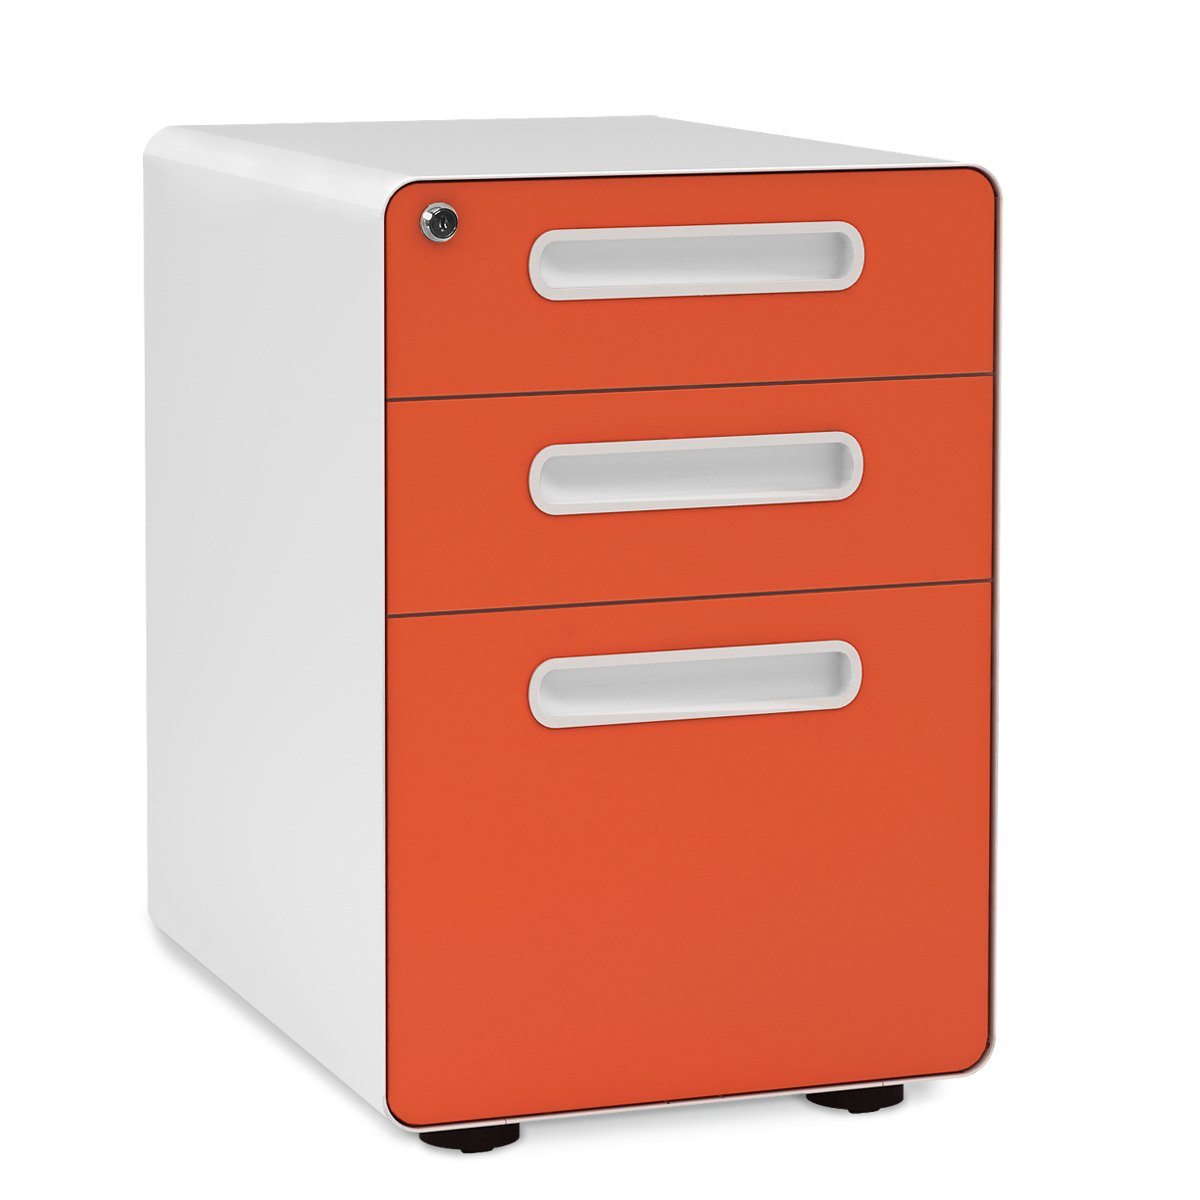 DEVAISE 3-Drawer Metal Mobile File Cabinet Round Edge Fully Assembled Cabinet with Wheels, Legal/Letter Size, Orange